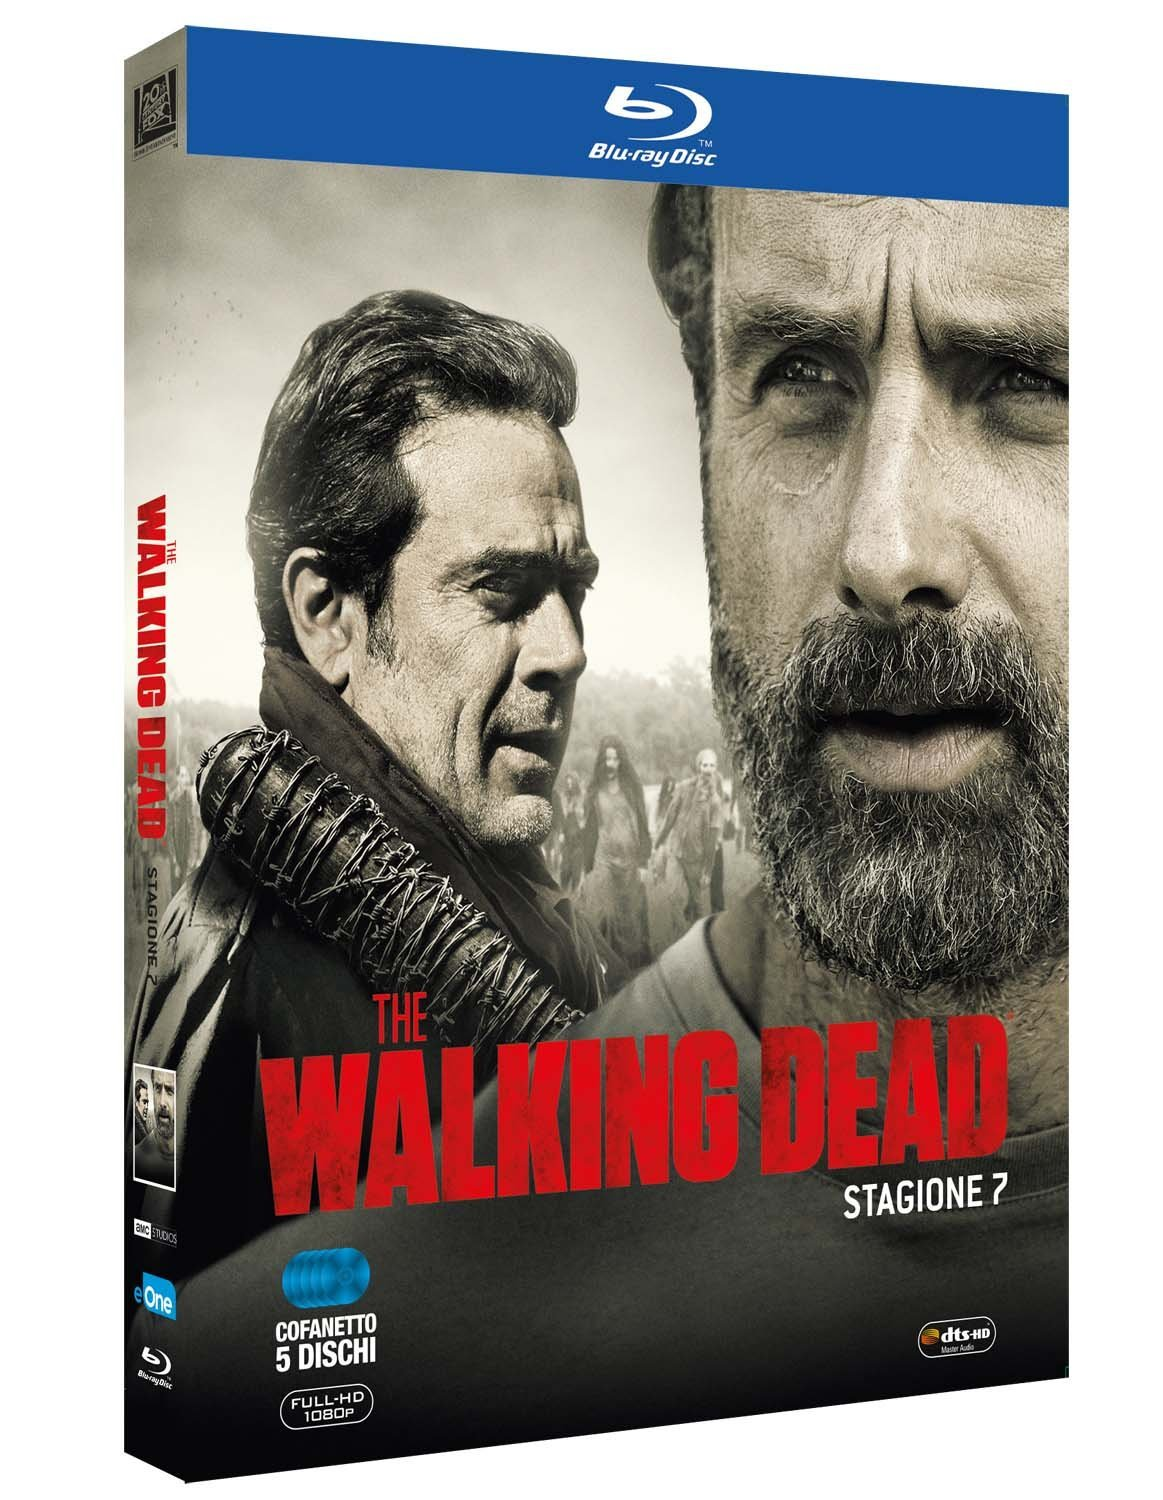 COF.THE WALKING DEAD - STAGIONE 07 (5 BLU-RAY)